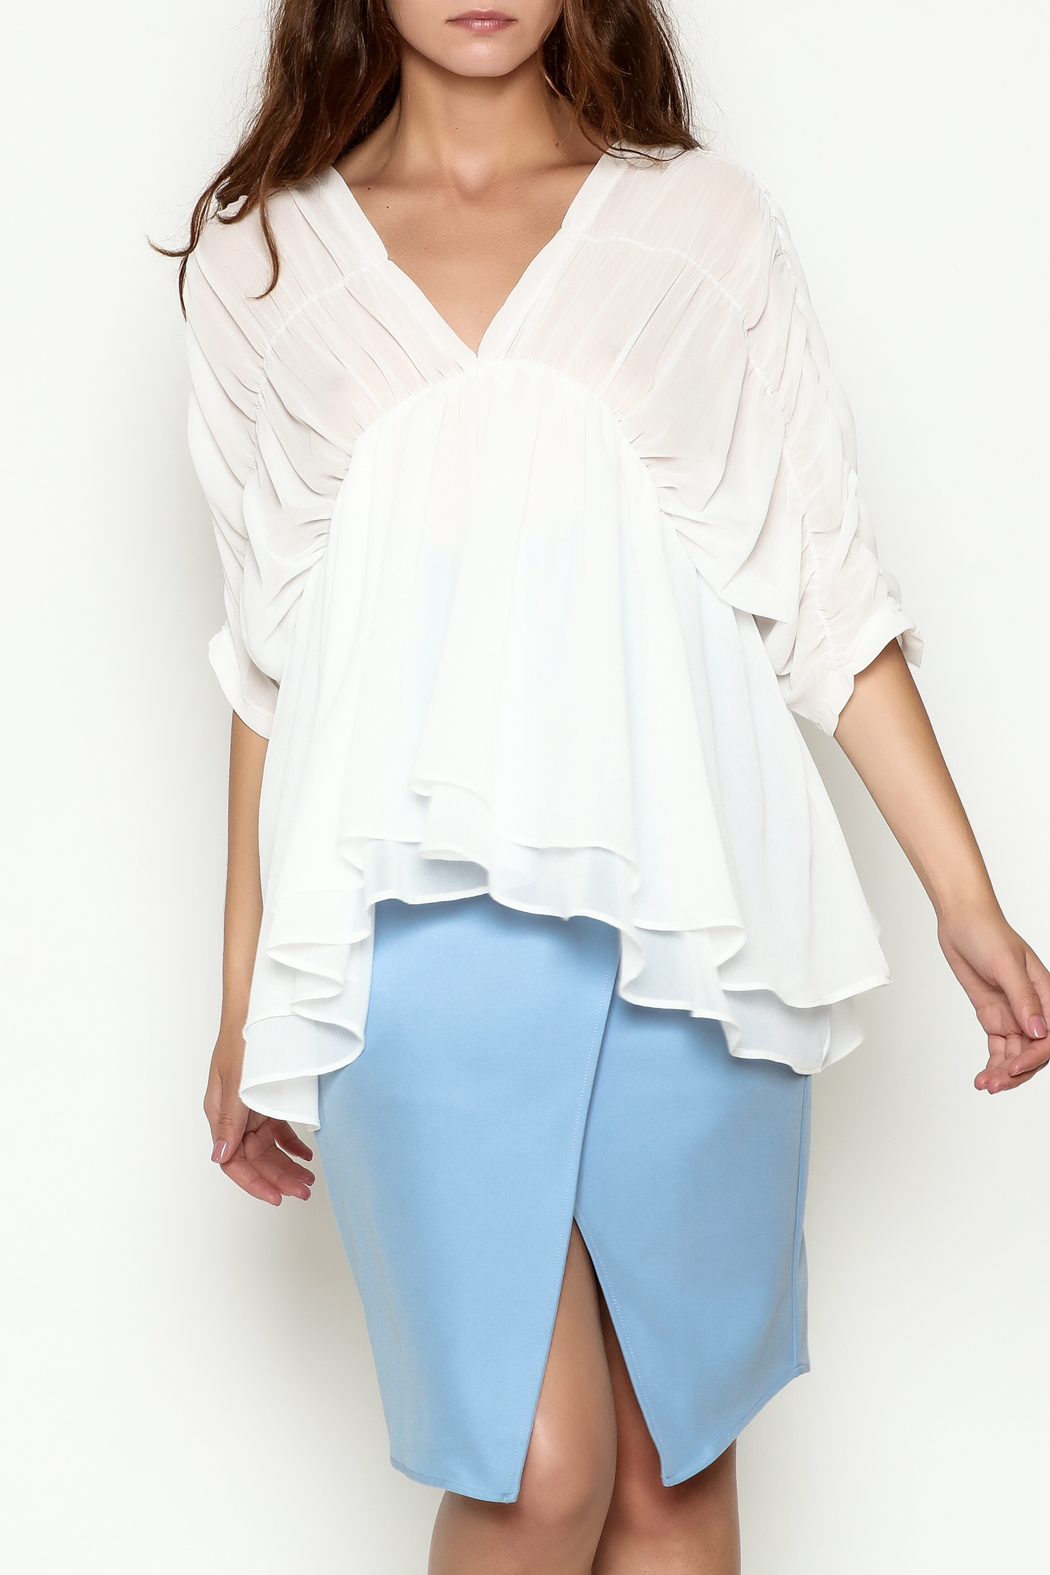 THINK CLOSET Flowy Dream Blouse - Main Image